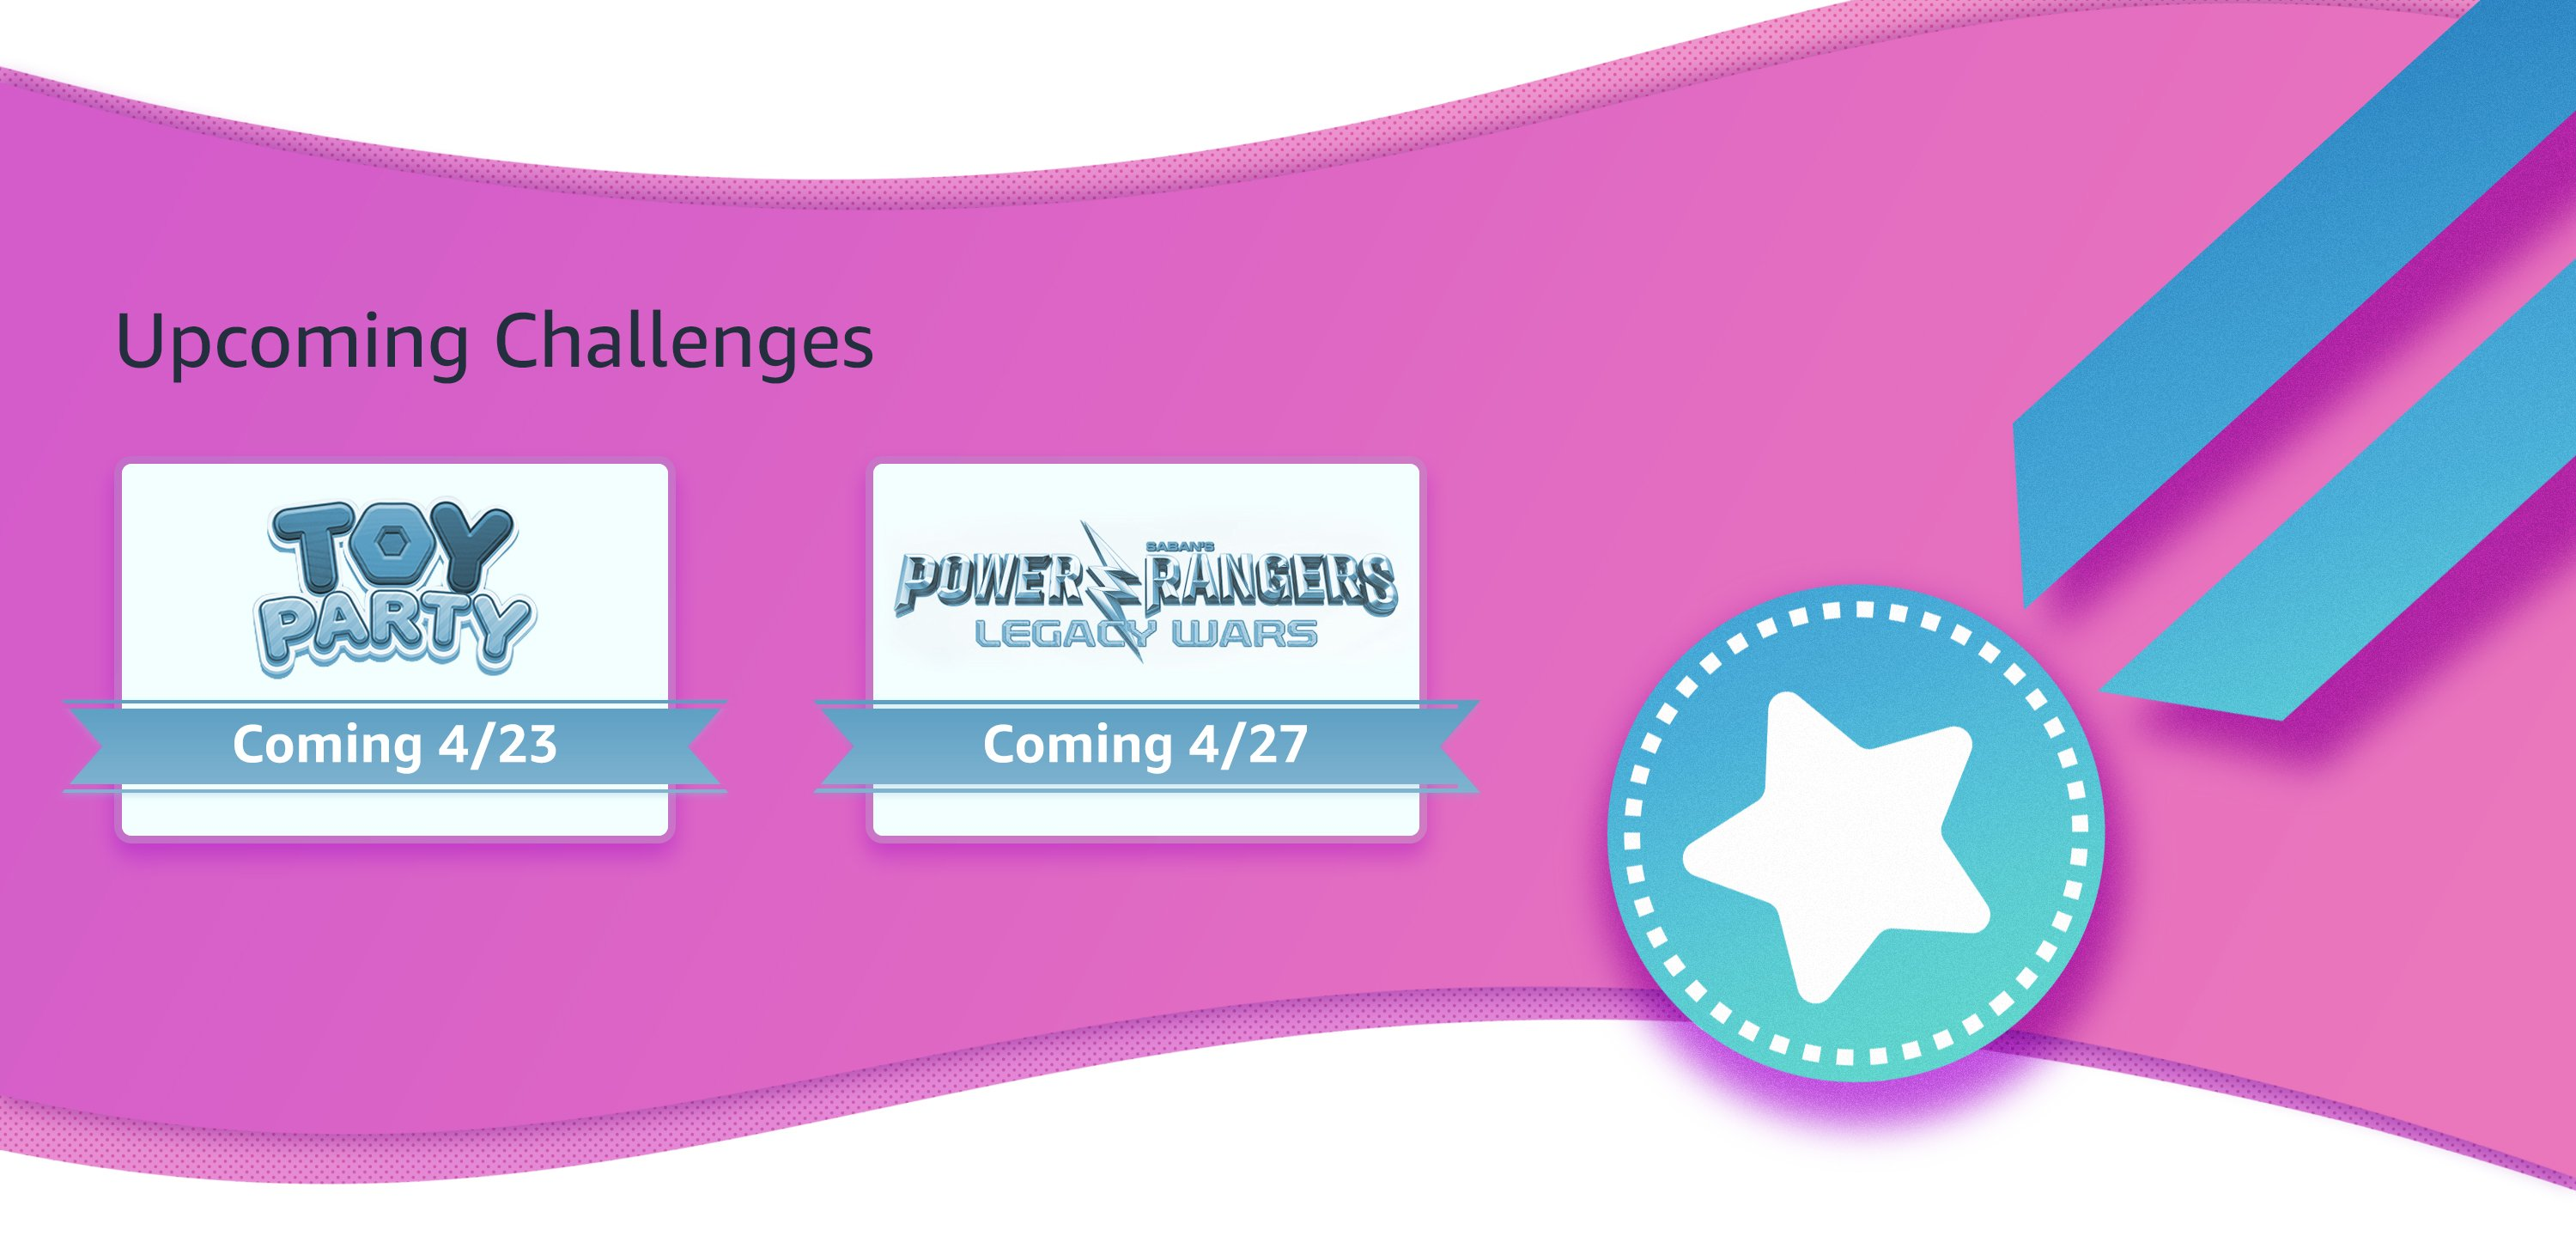 Upcoming Challenges